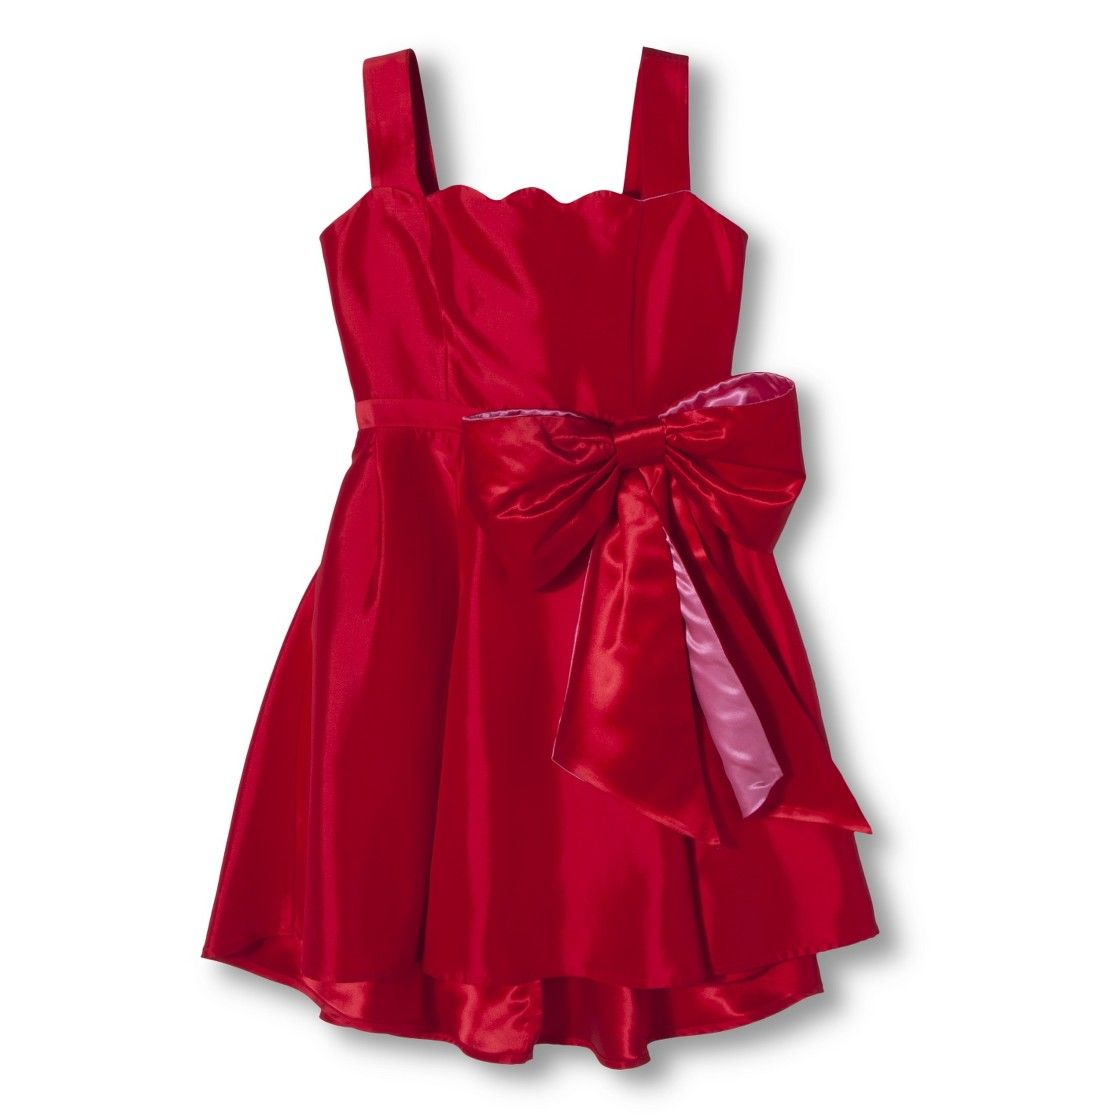 Annie For Target Girls Bow Dress Dress With Bow Target Girls Annie Dress [ 1120 x 1120 Pixel ]